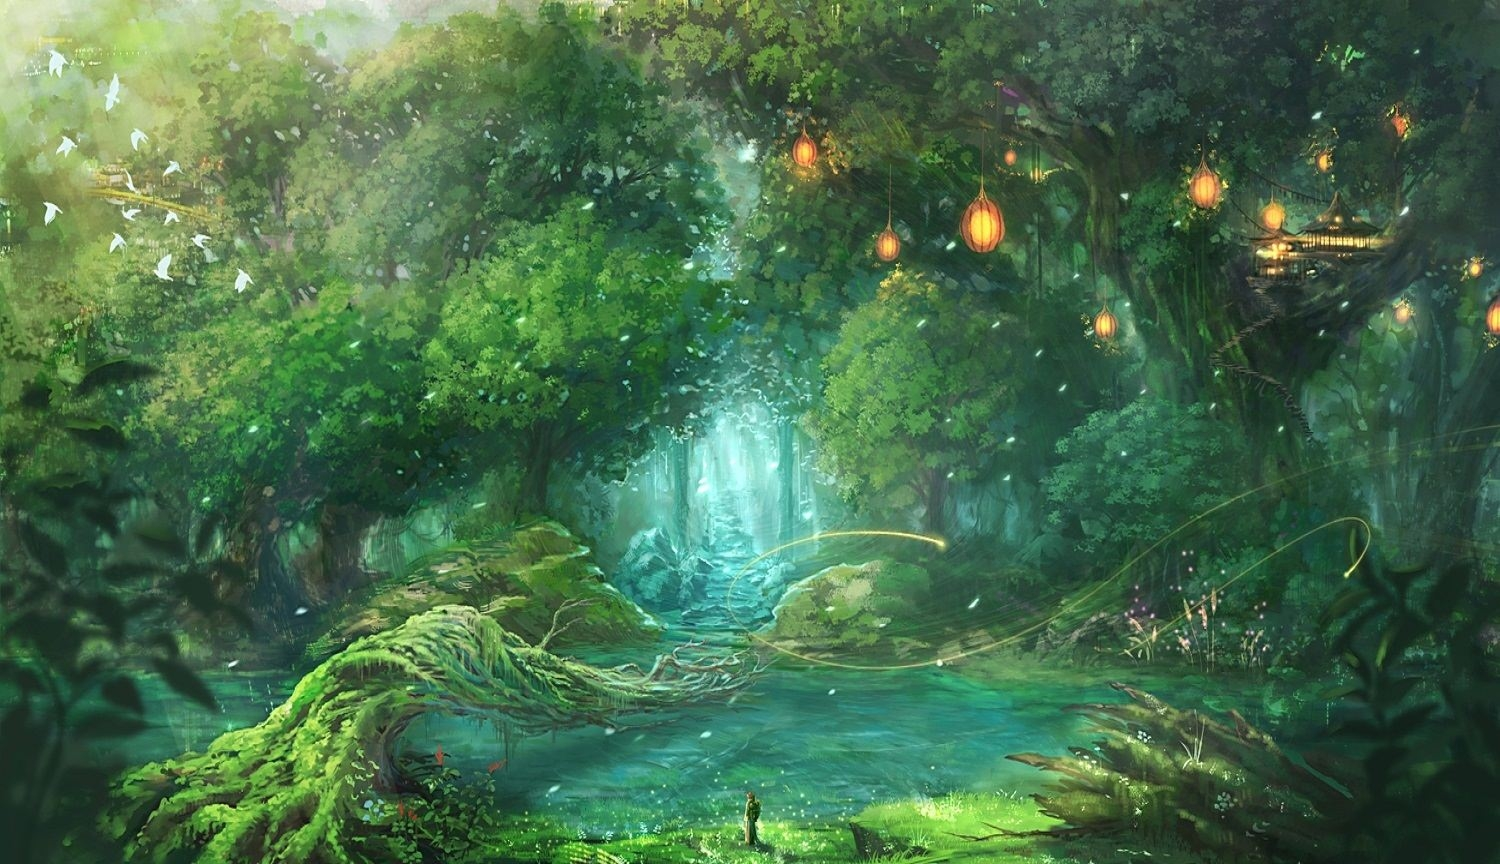 21+ magical wallpapers, mystical backgrounds, pictures, images